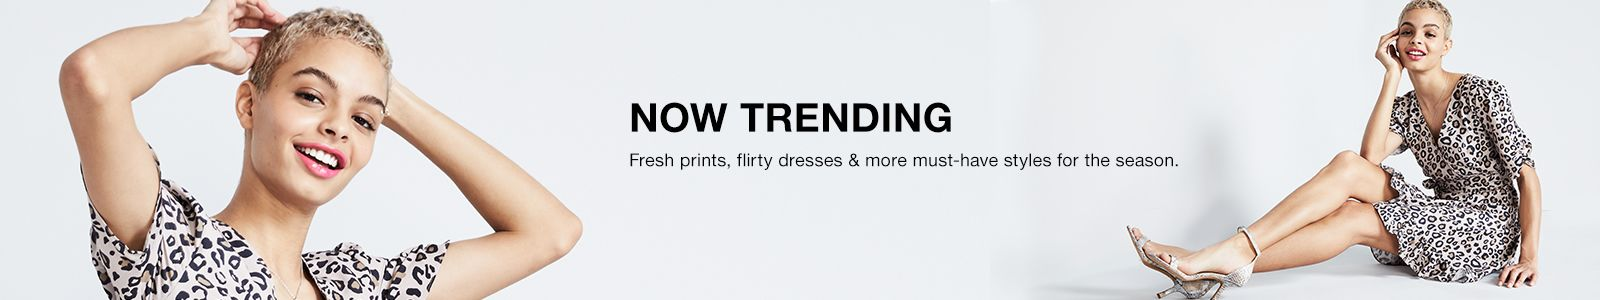 Now Trending, Fresh prints, flirty dresses and more must-have styles for season